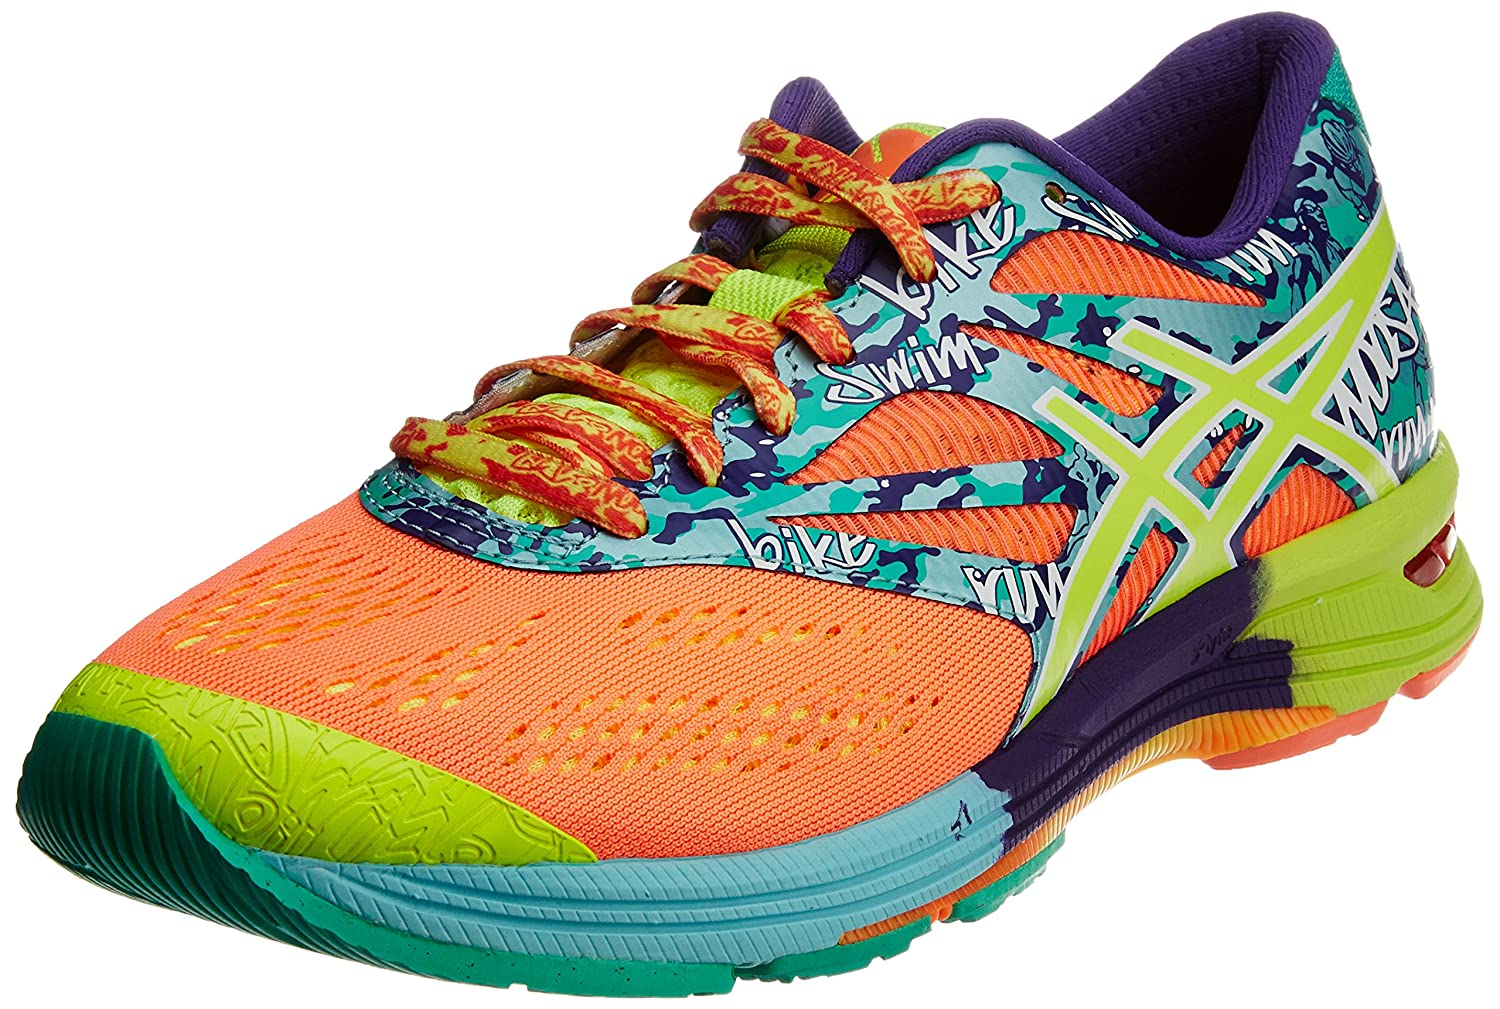 ASICS Women's Gel-Noosa Tri 10 Flash Coral, Flash Yellow and Ice Blue Mesh  Triathlon Shoes - Running Shoes -4 UK/India (37 EU)(6 US): Amazon.in: Shoes  & ...